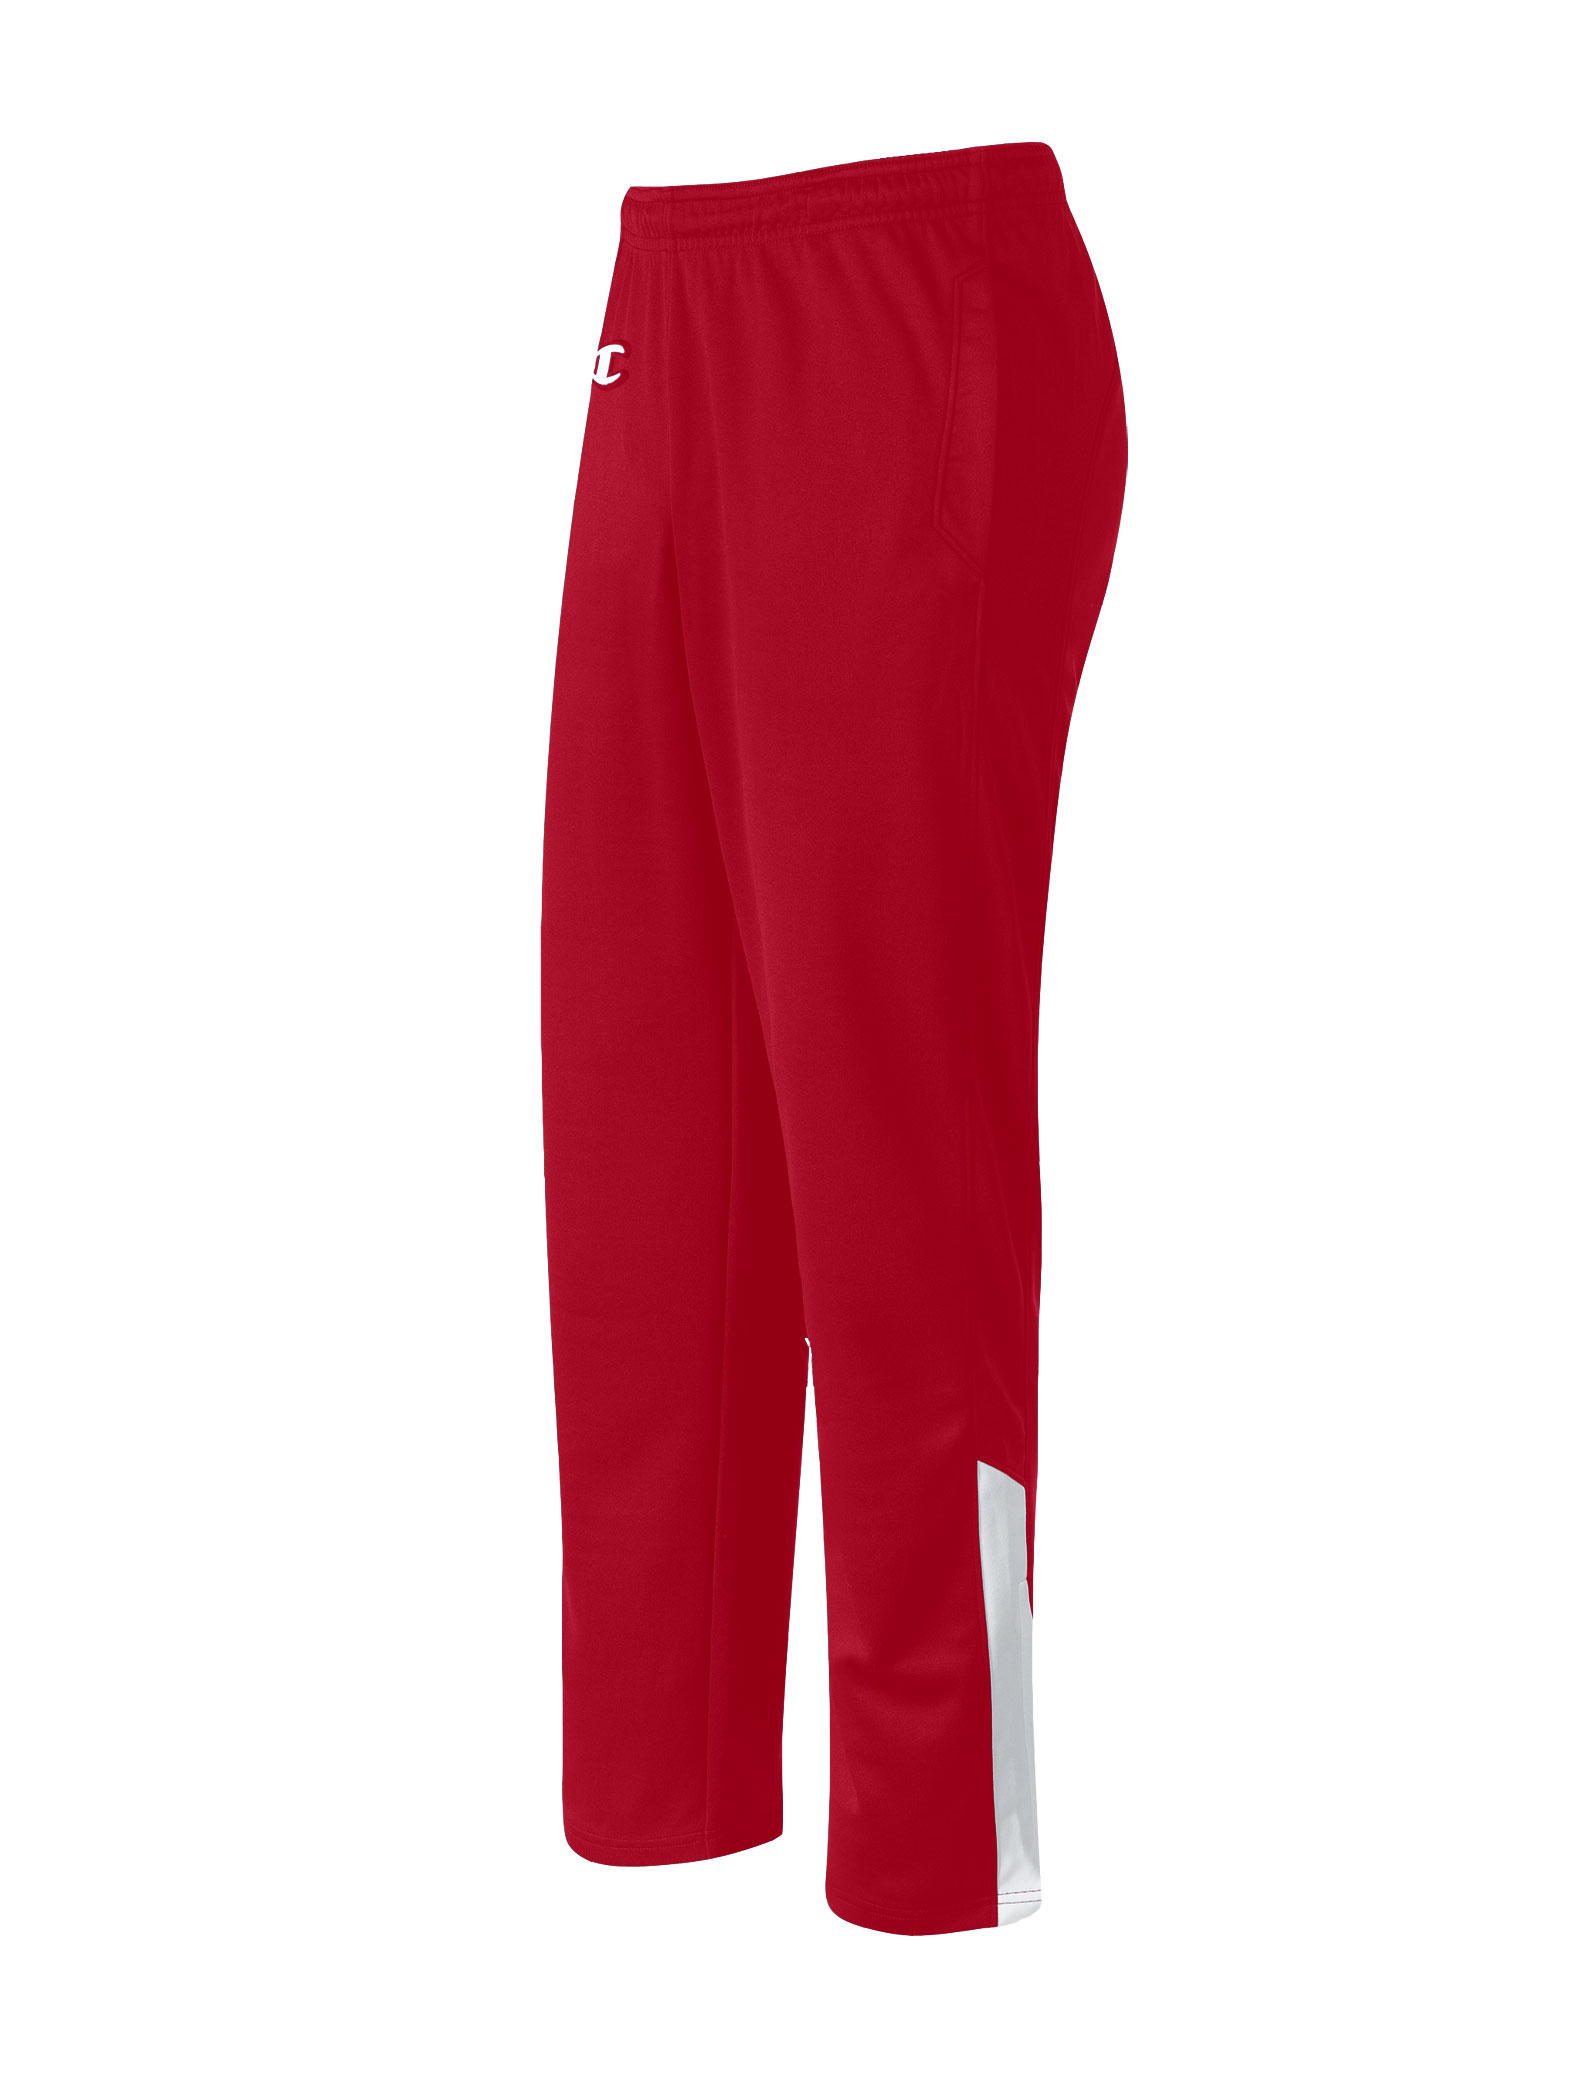 Mens Champion Knit Team Pant